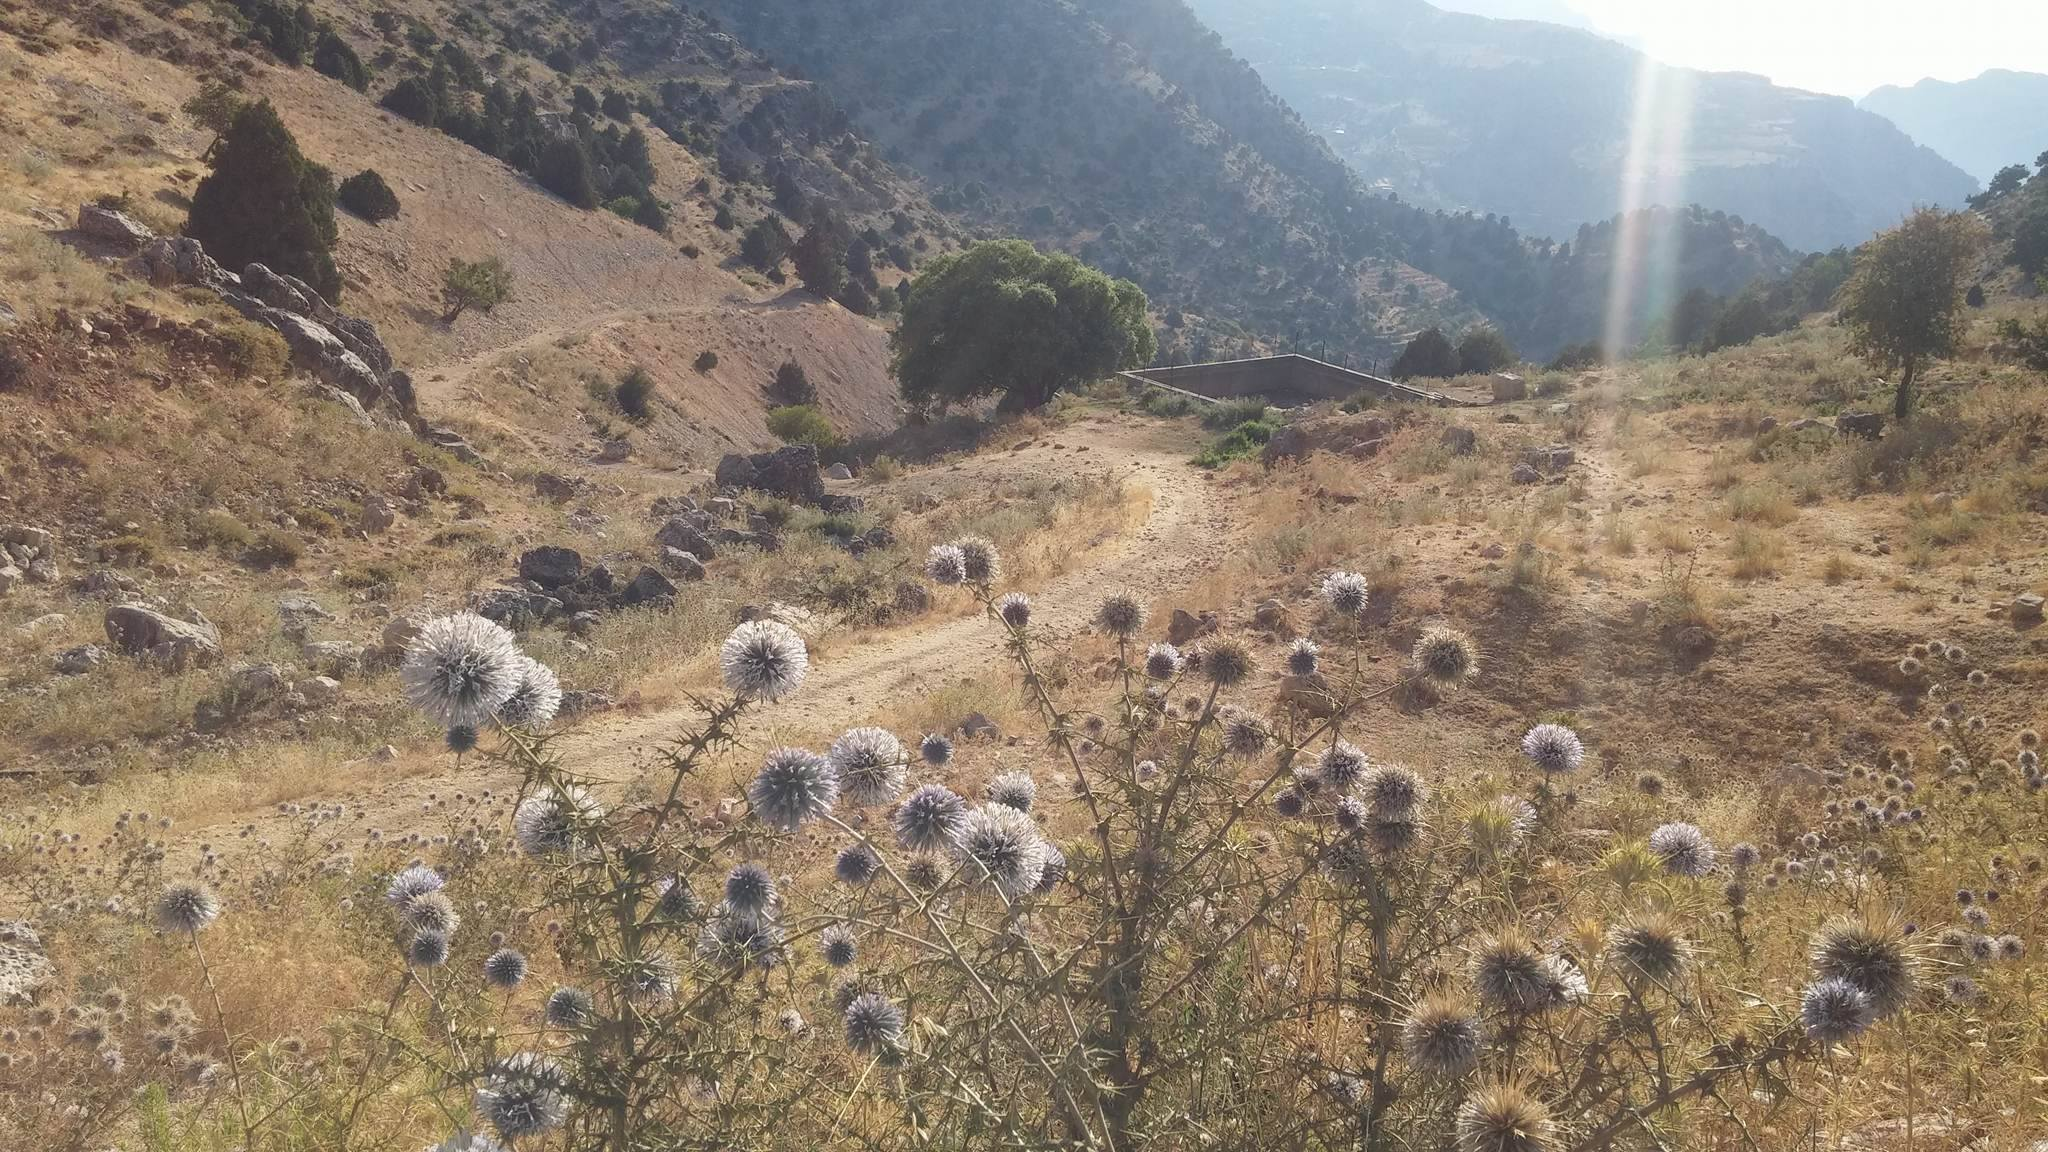 The Lebanese Village Of Quot Great Myths Quot And Amazing Nature